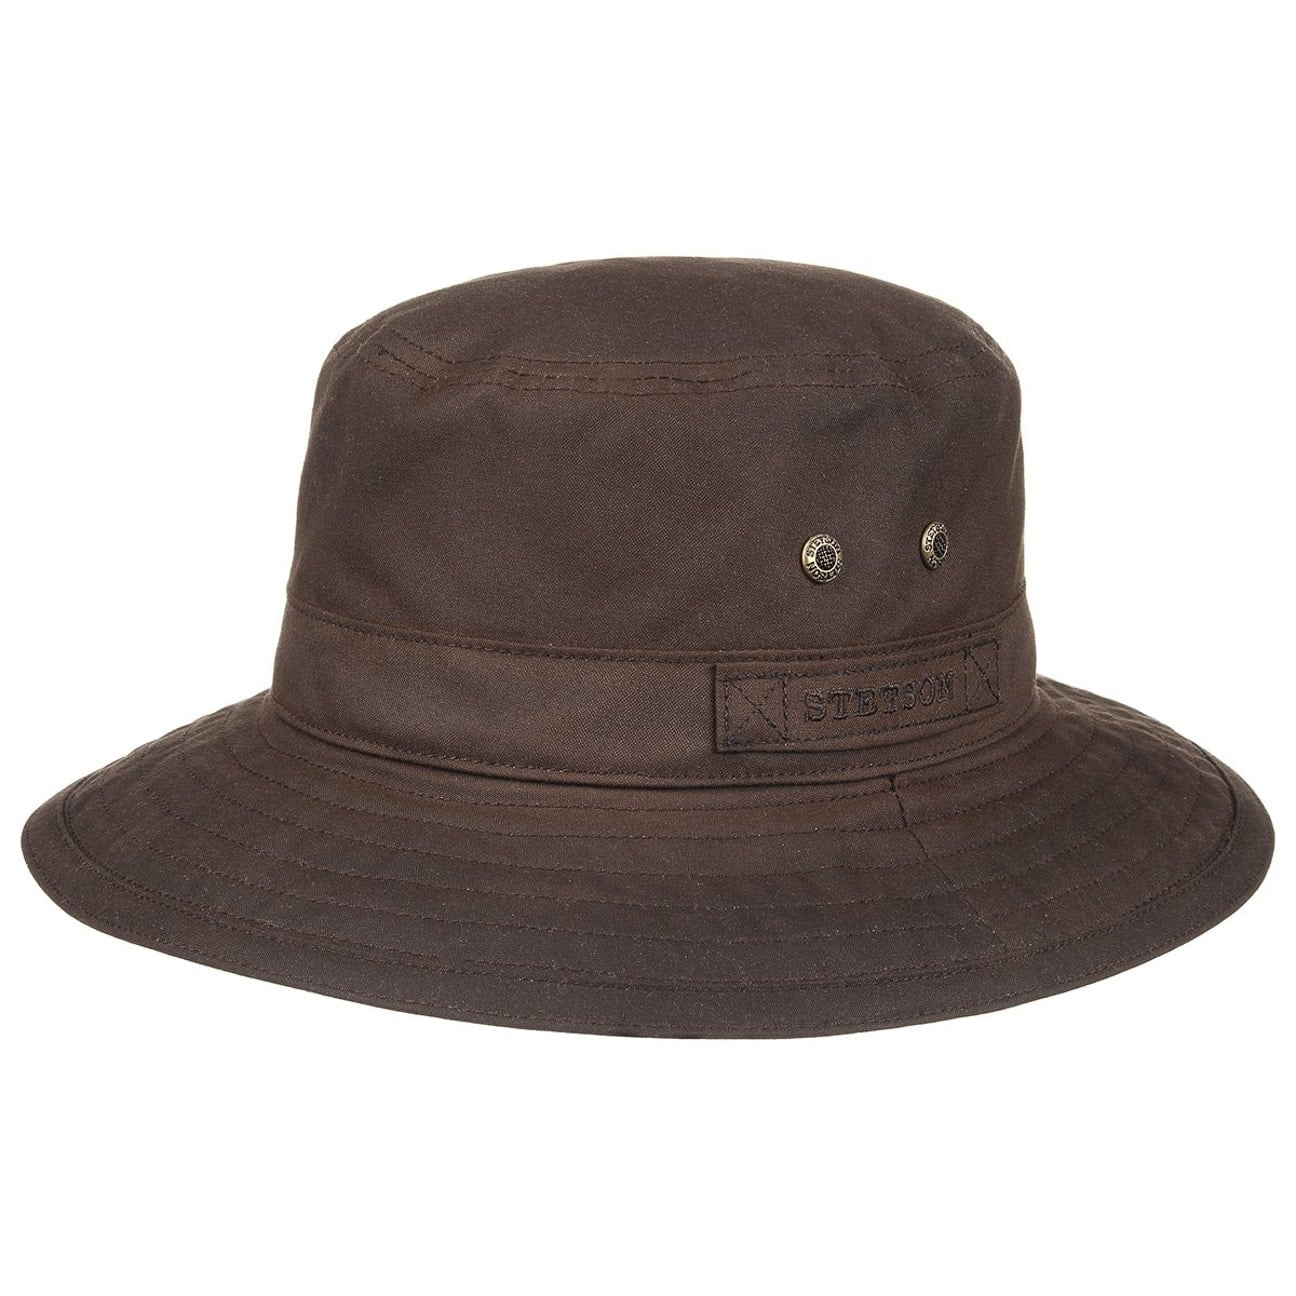 bd6047aa16 ... Atkins Waxed Cotton Bucket Hat by Stetson - brown 6 ...